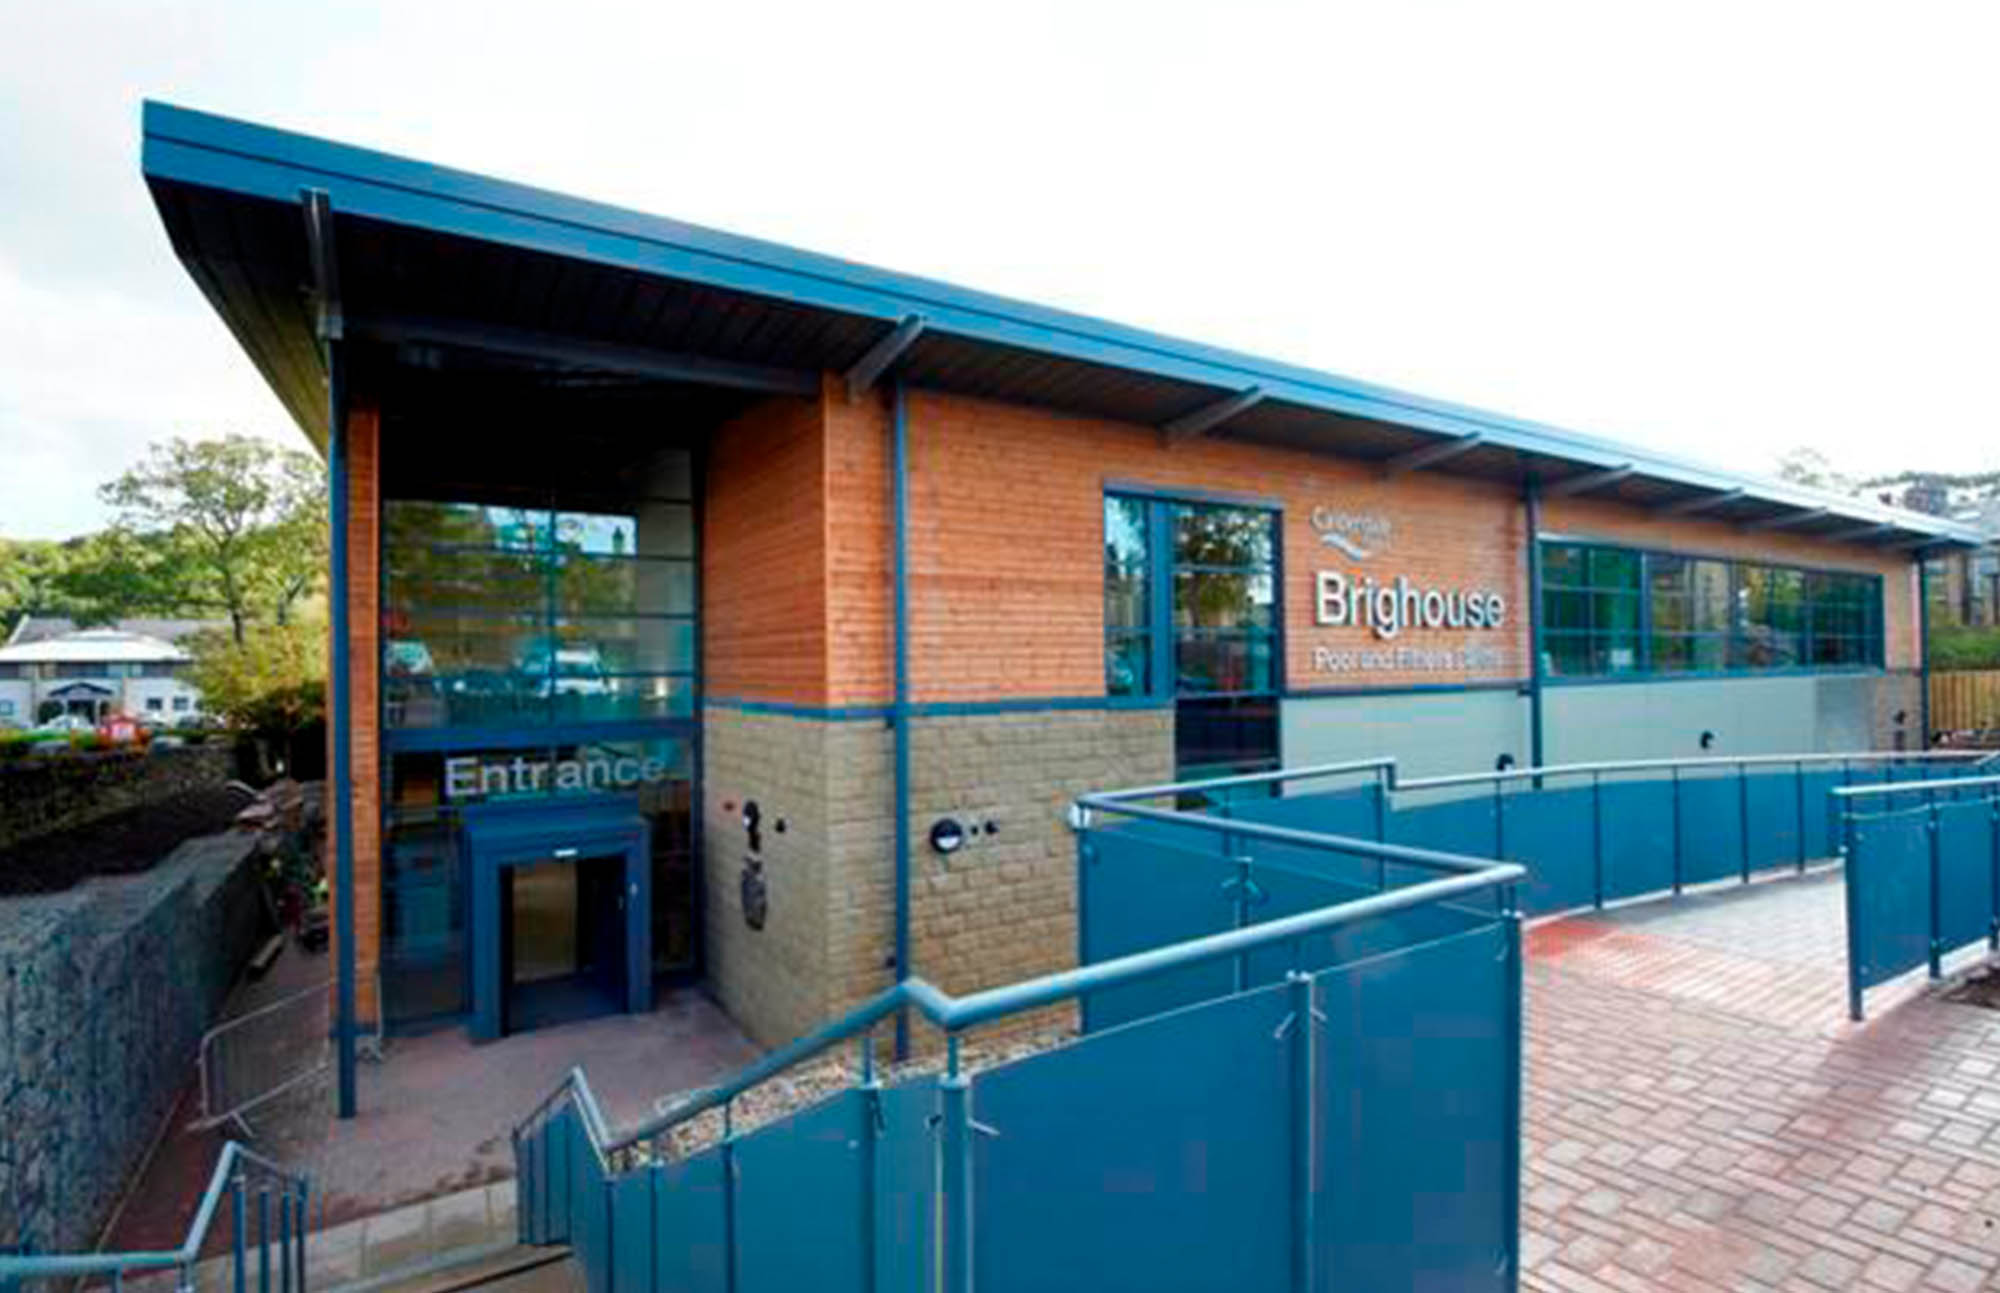 Brighouse Swimming Pool and Leisure Centre